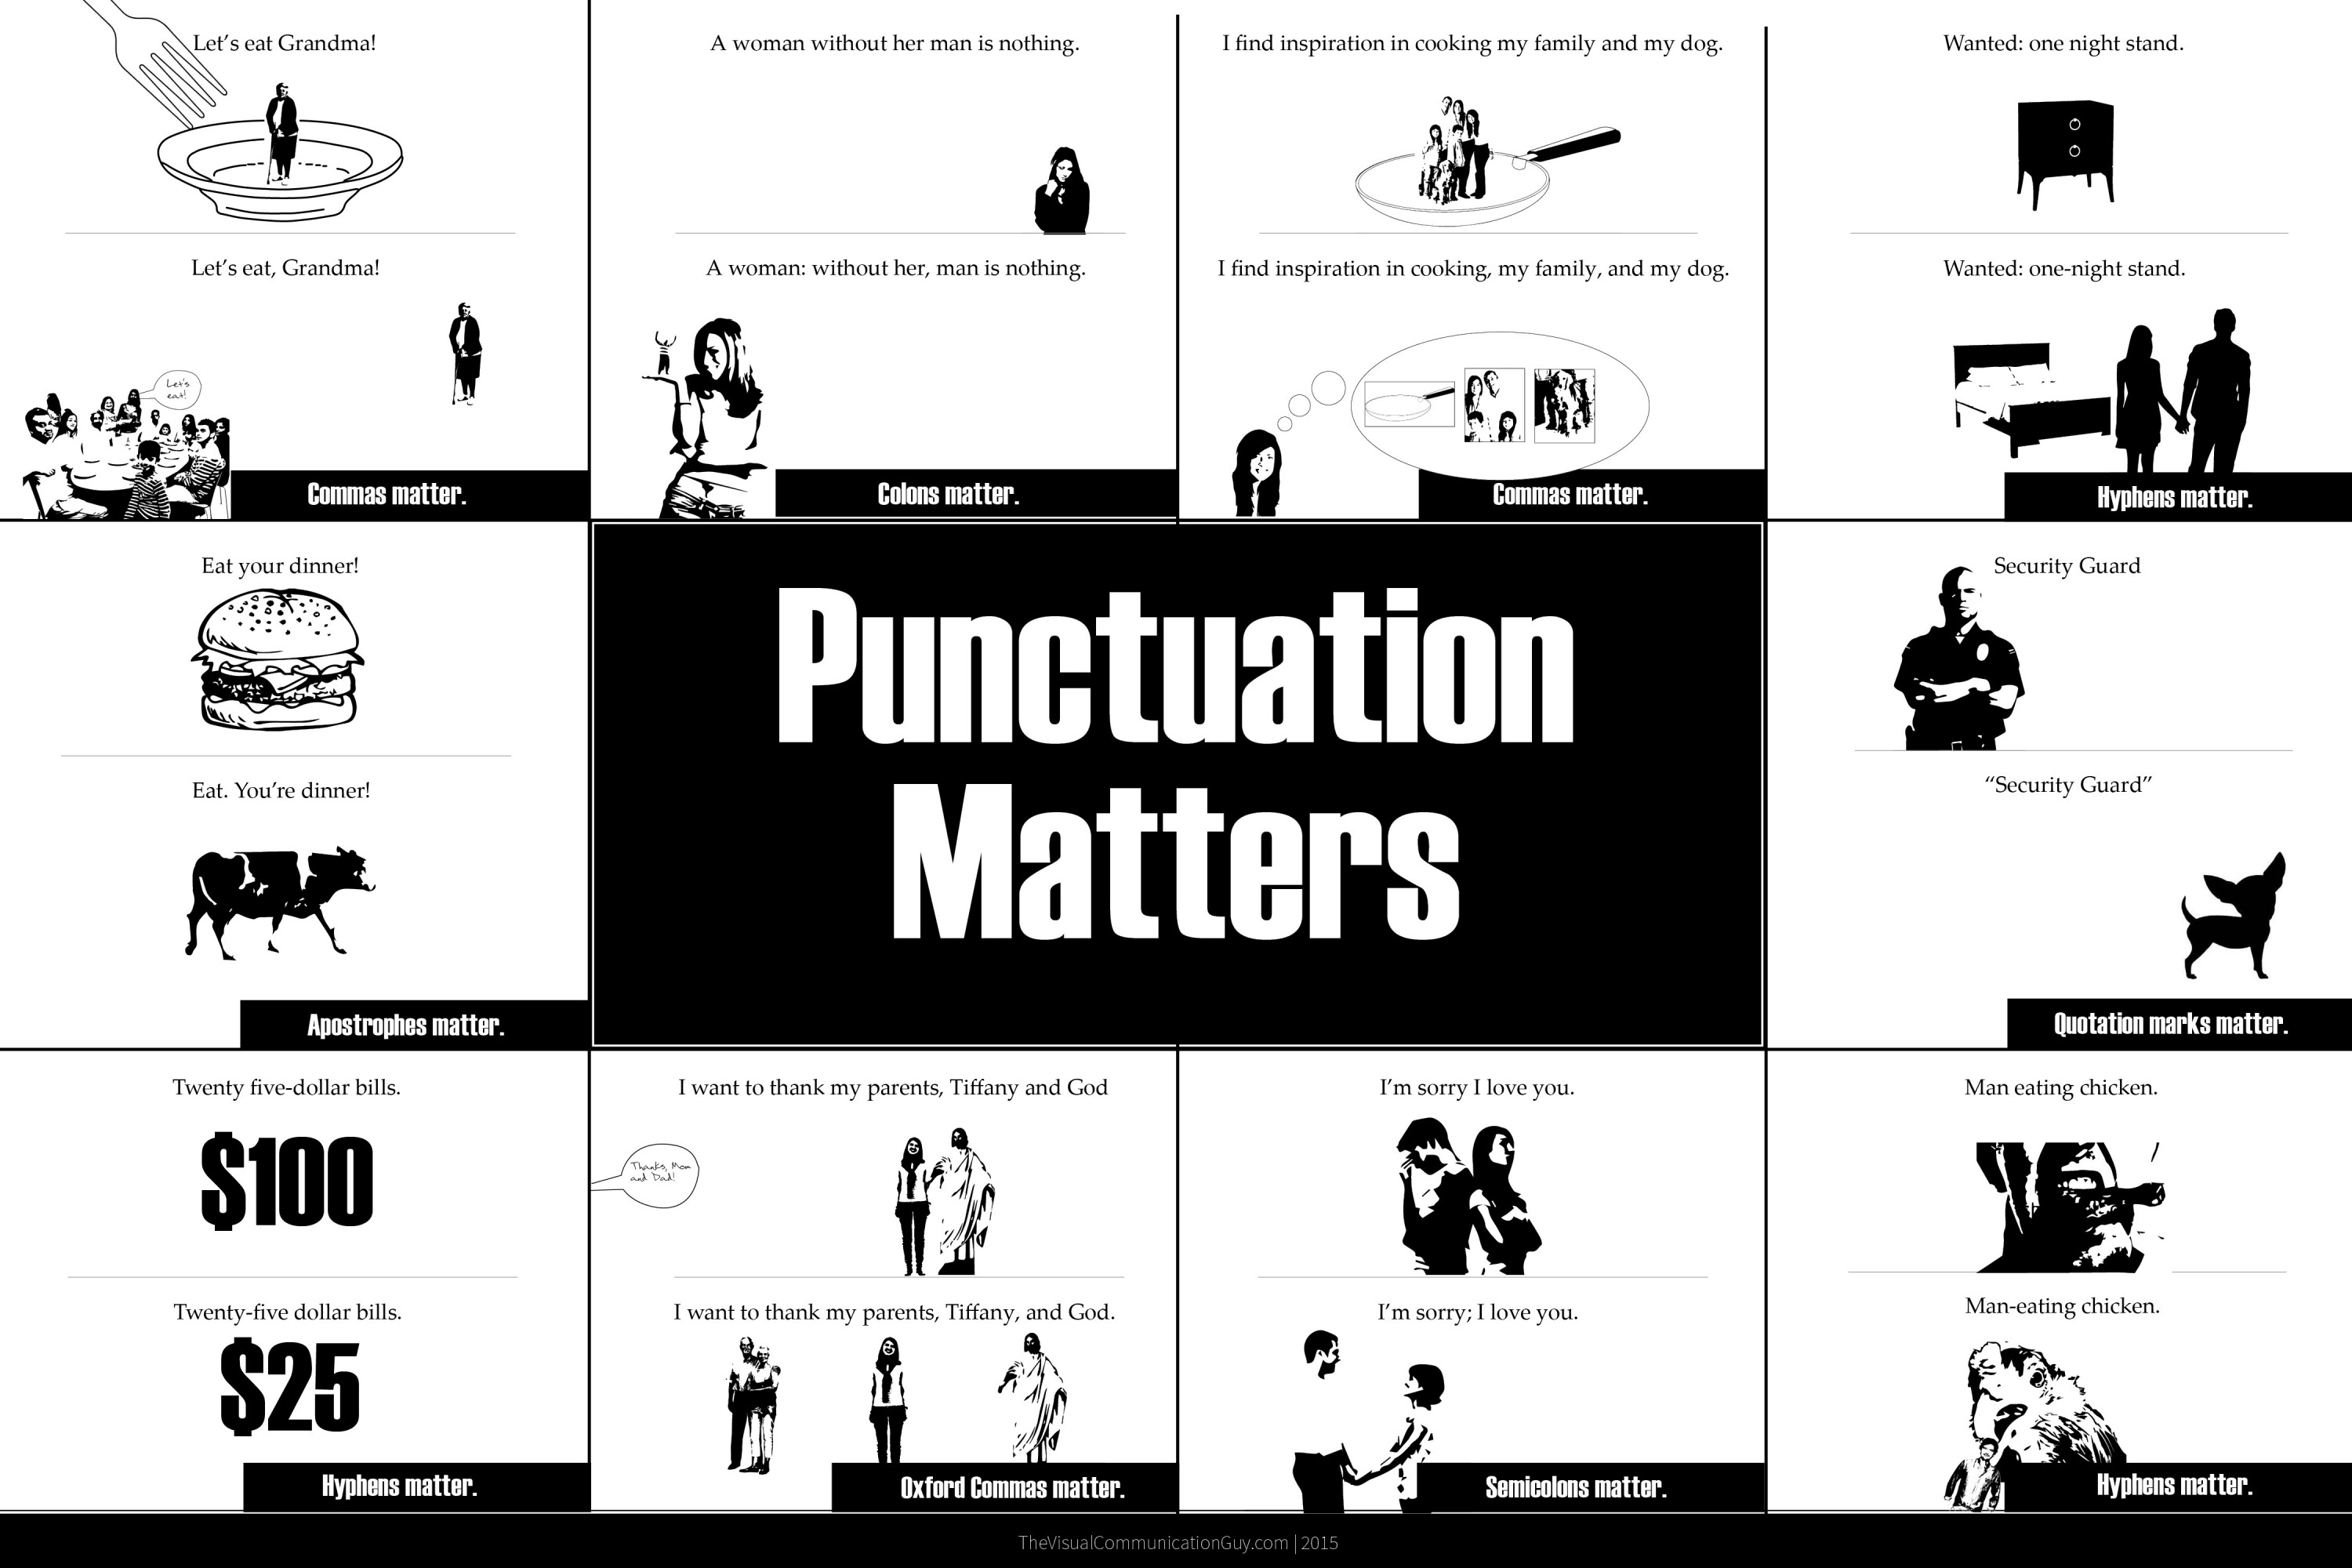 Punctuation Matters: 10 Hilarious Proofs that Correct Usage Makes a Huge Difference